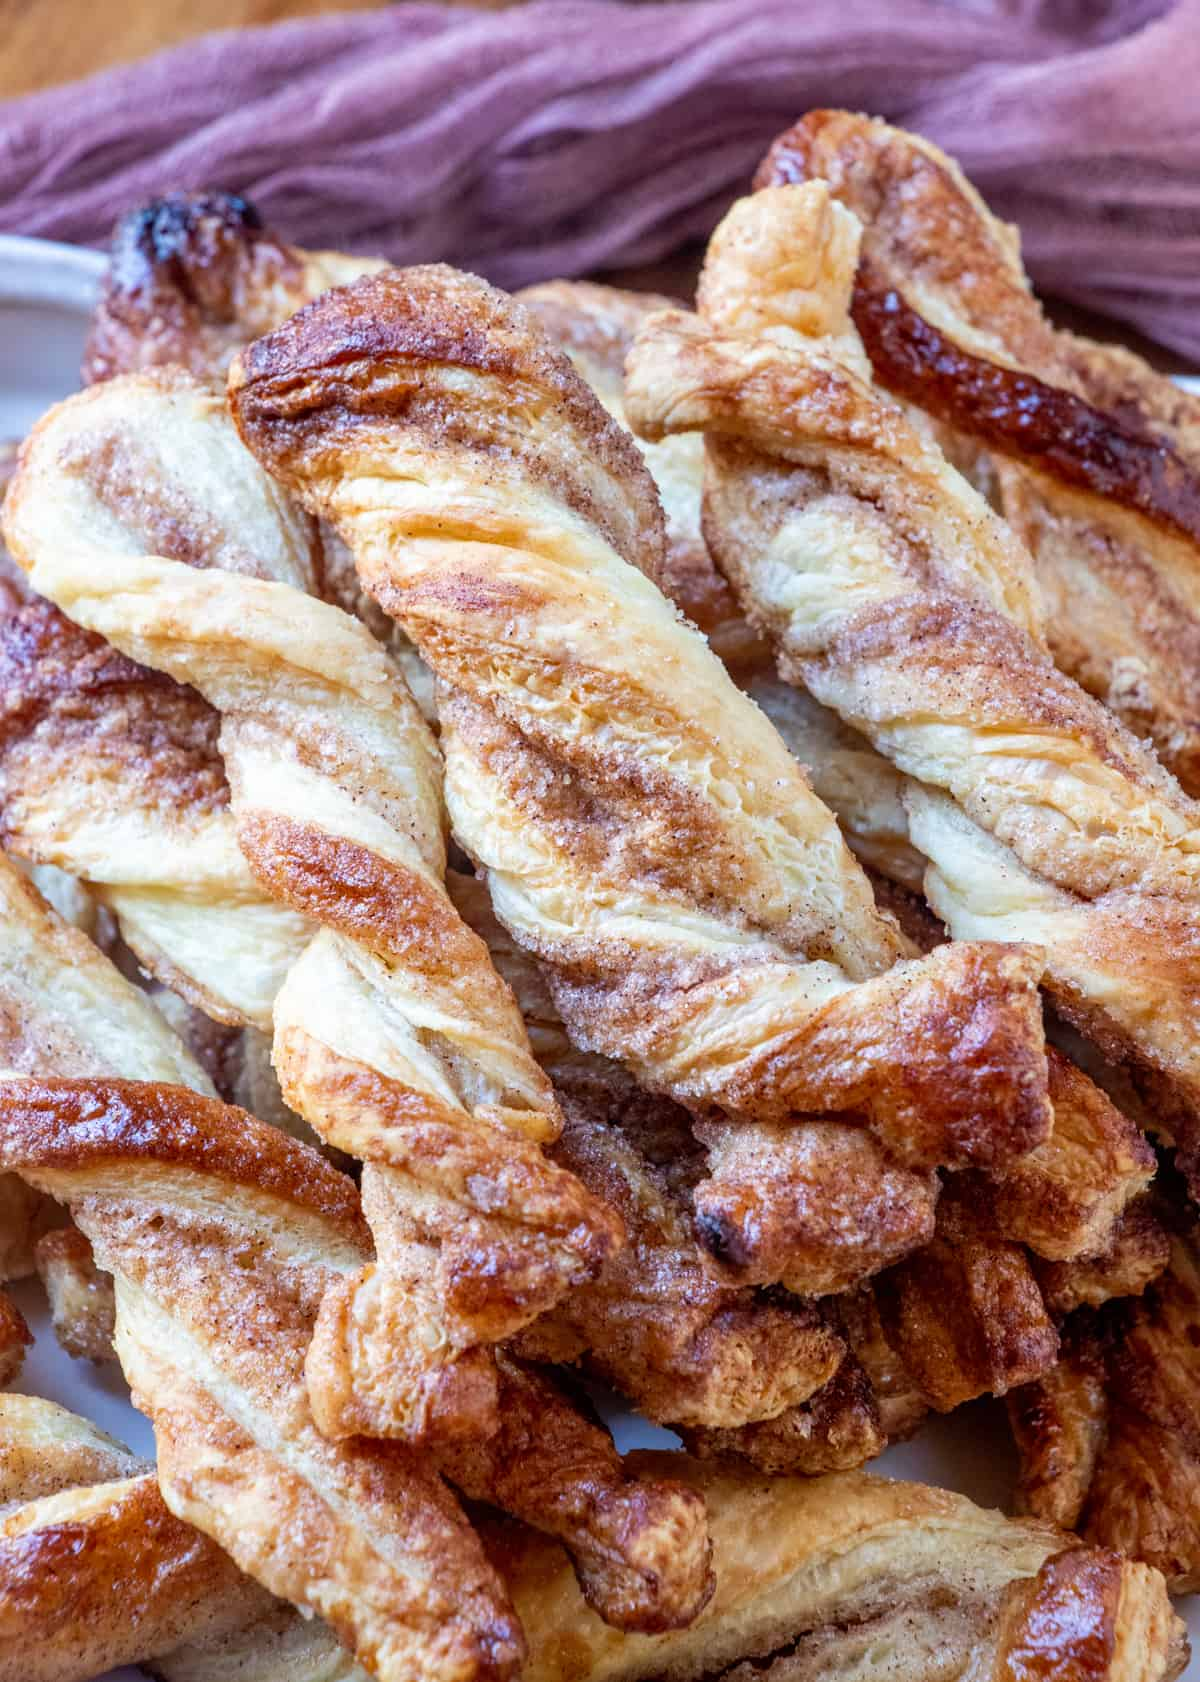 Up close photo of baked twists showing the cinnamon and sugar